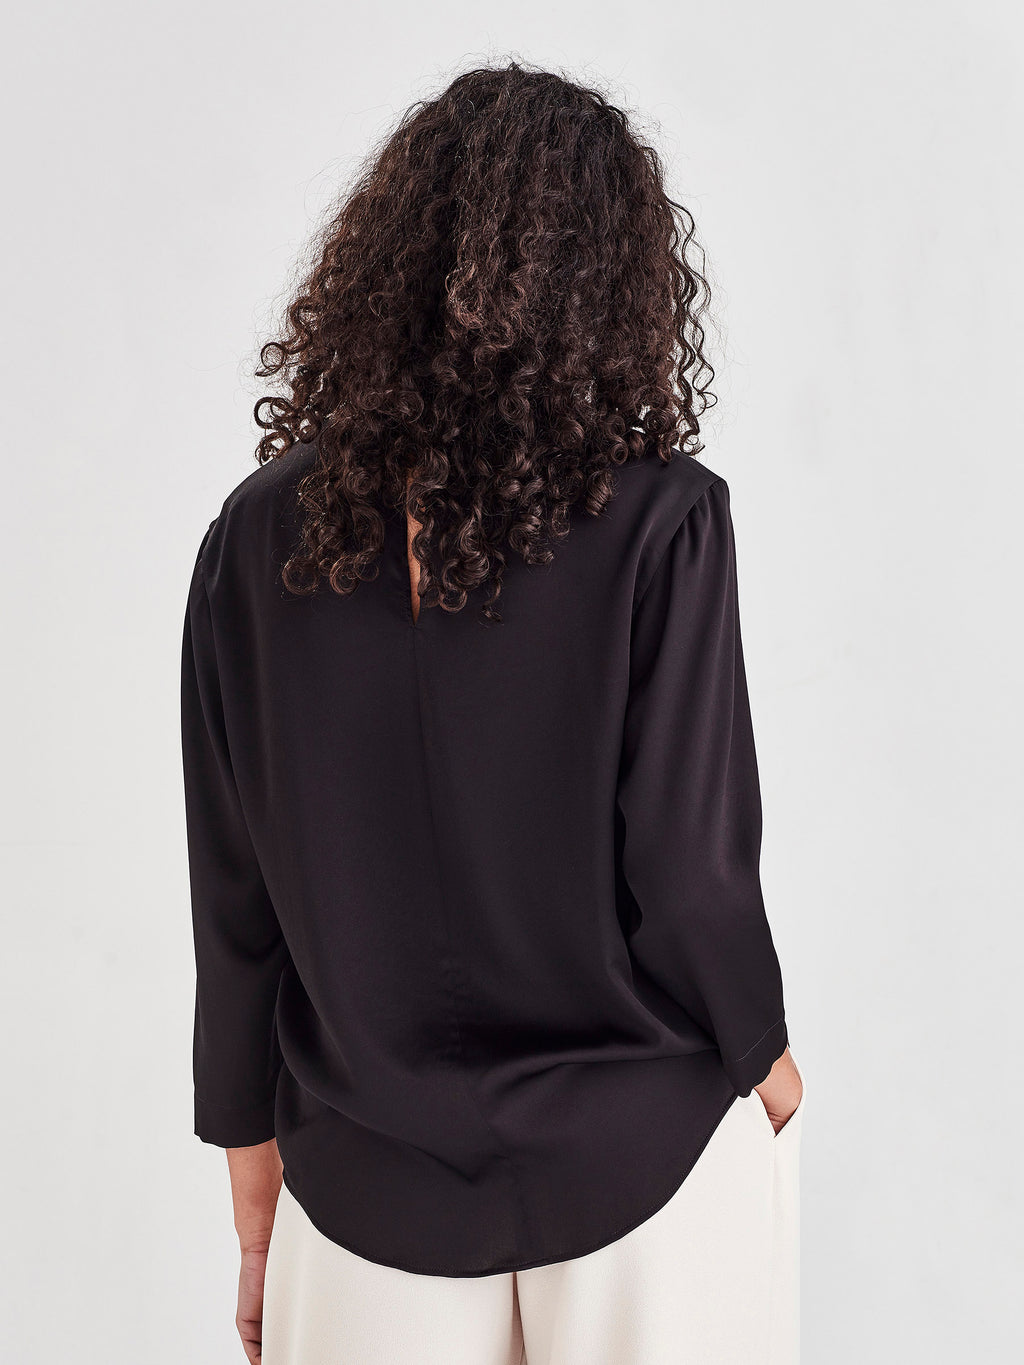 Parlour Blouse (Satin Triacetate) Black